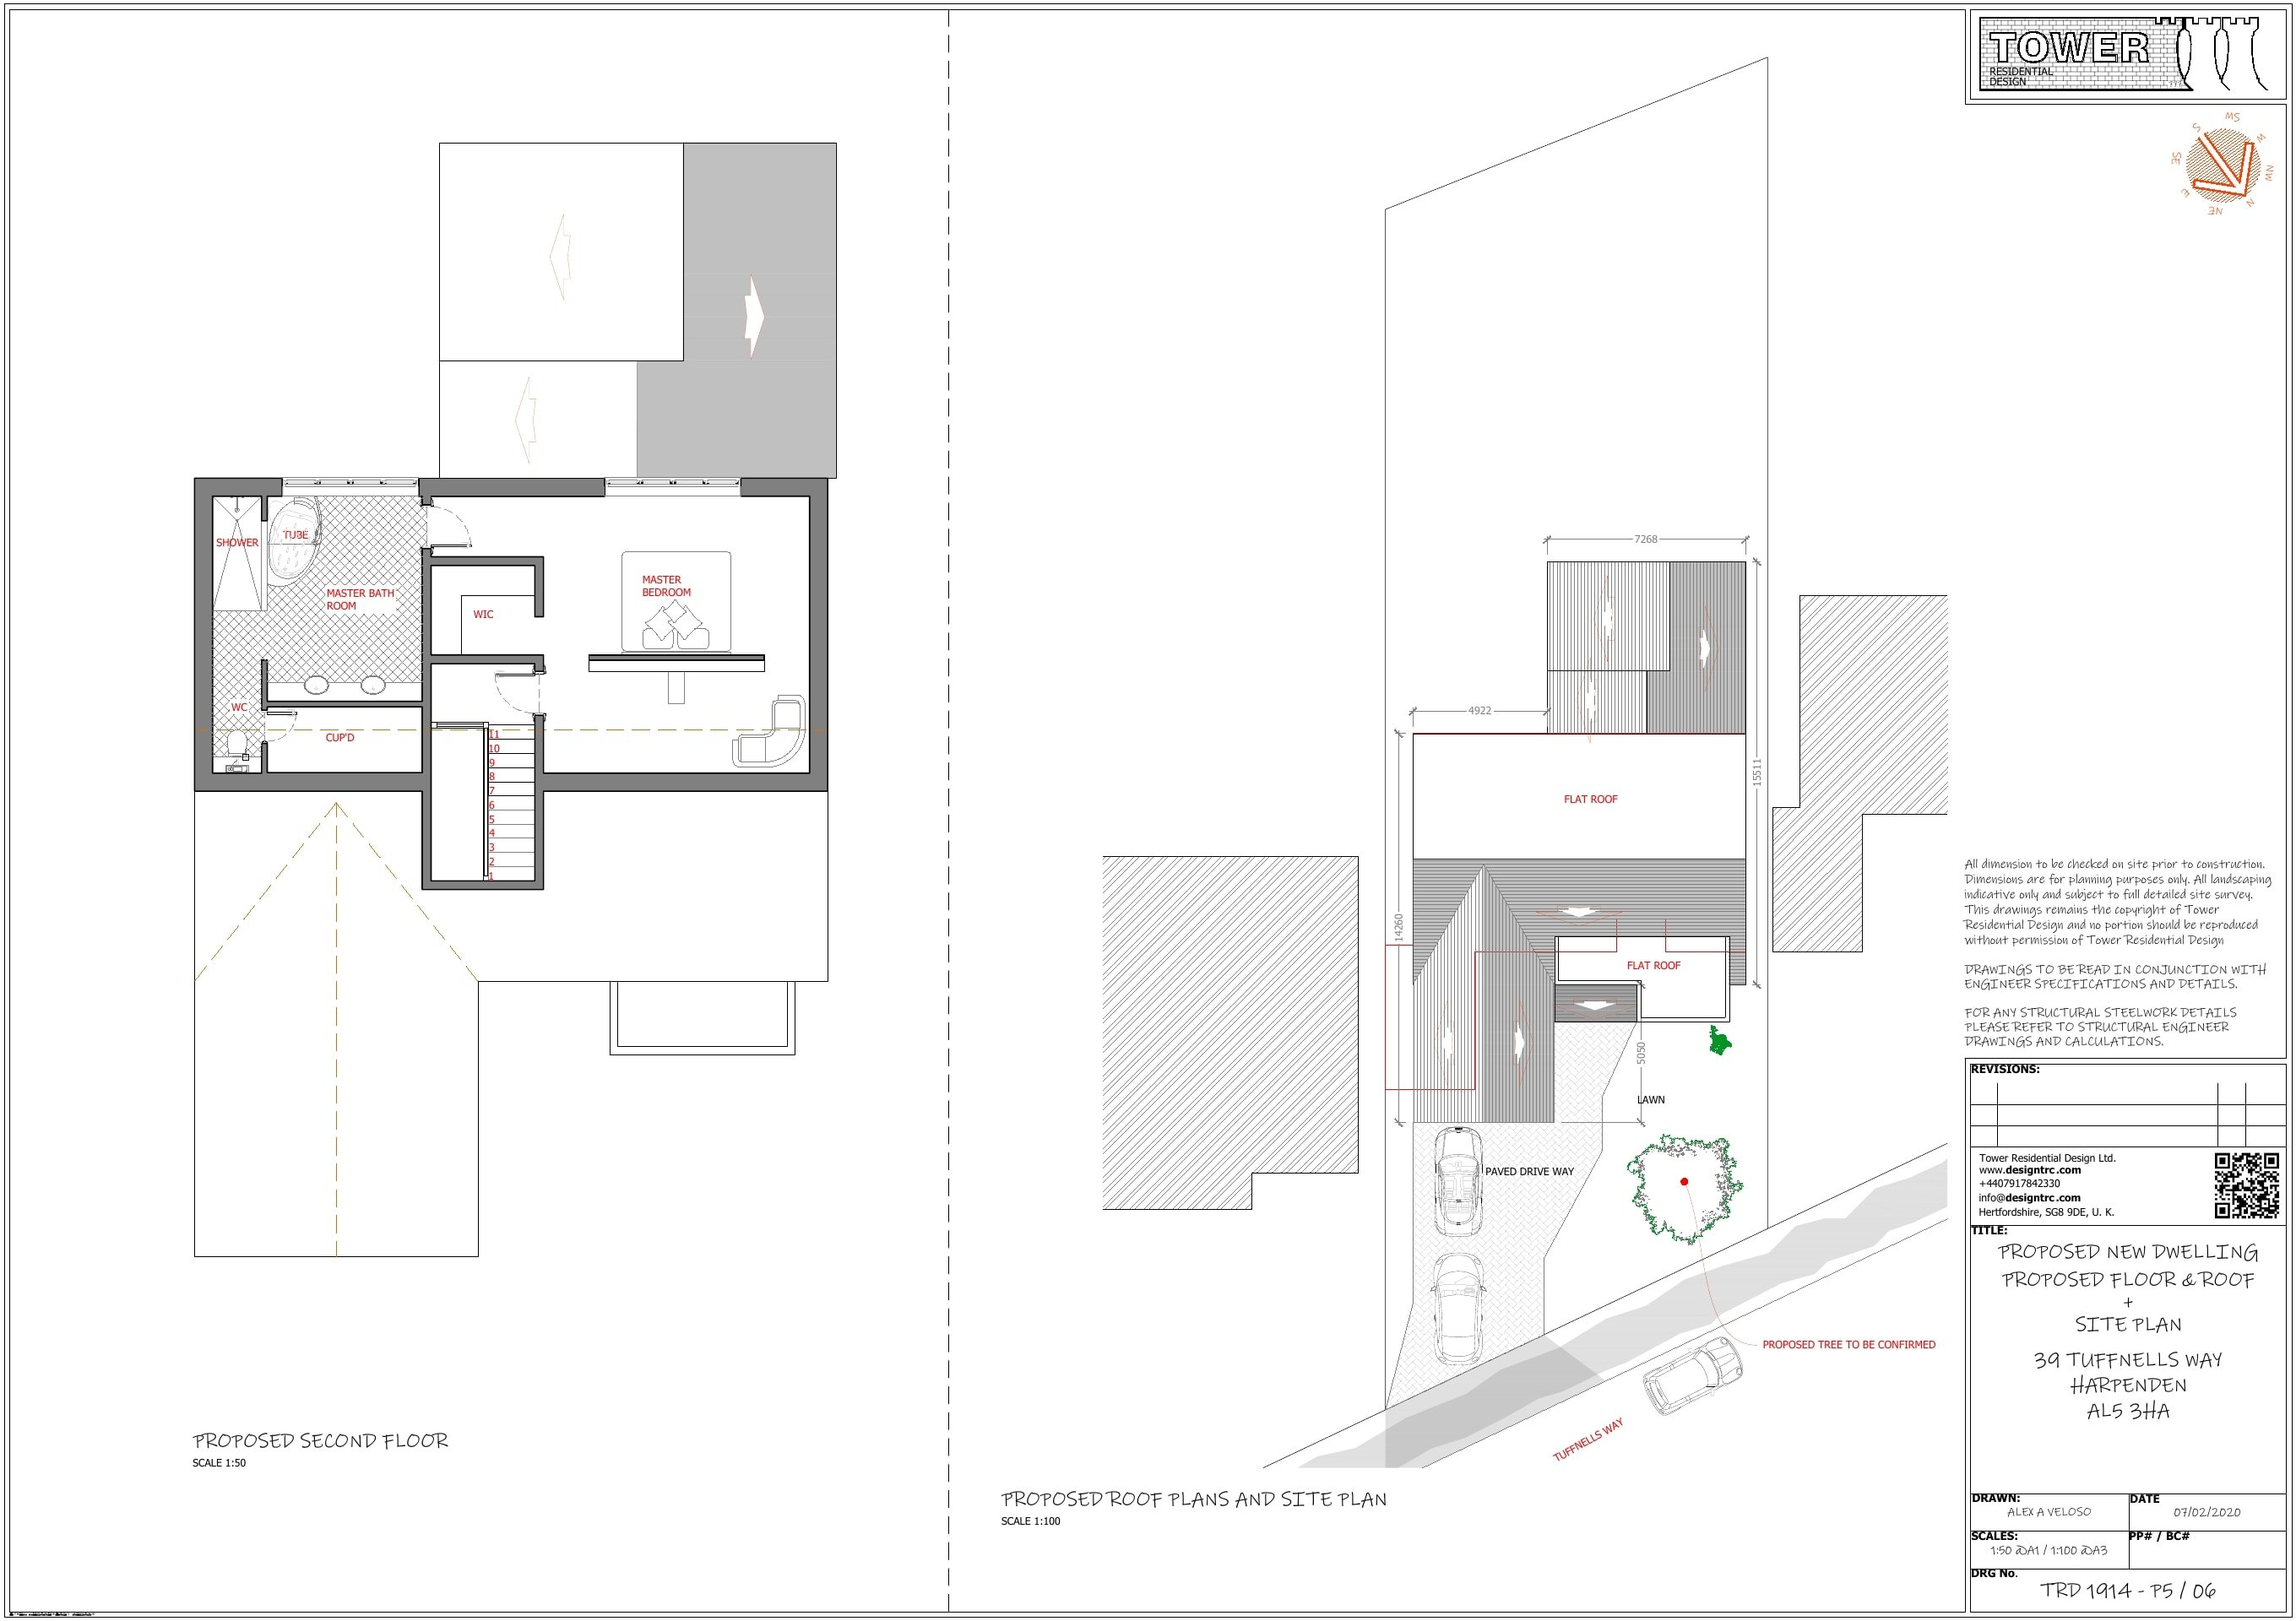 Architectural Plans for Planning Application - FF Floor